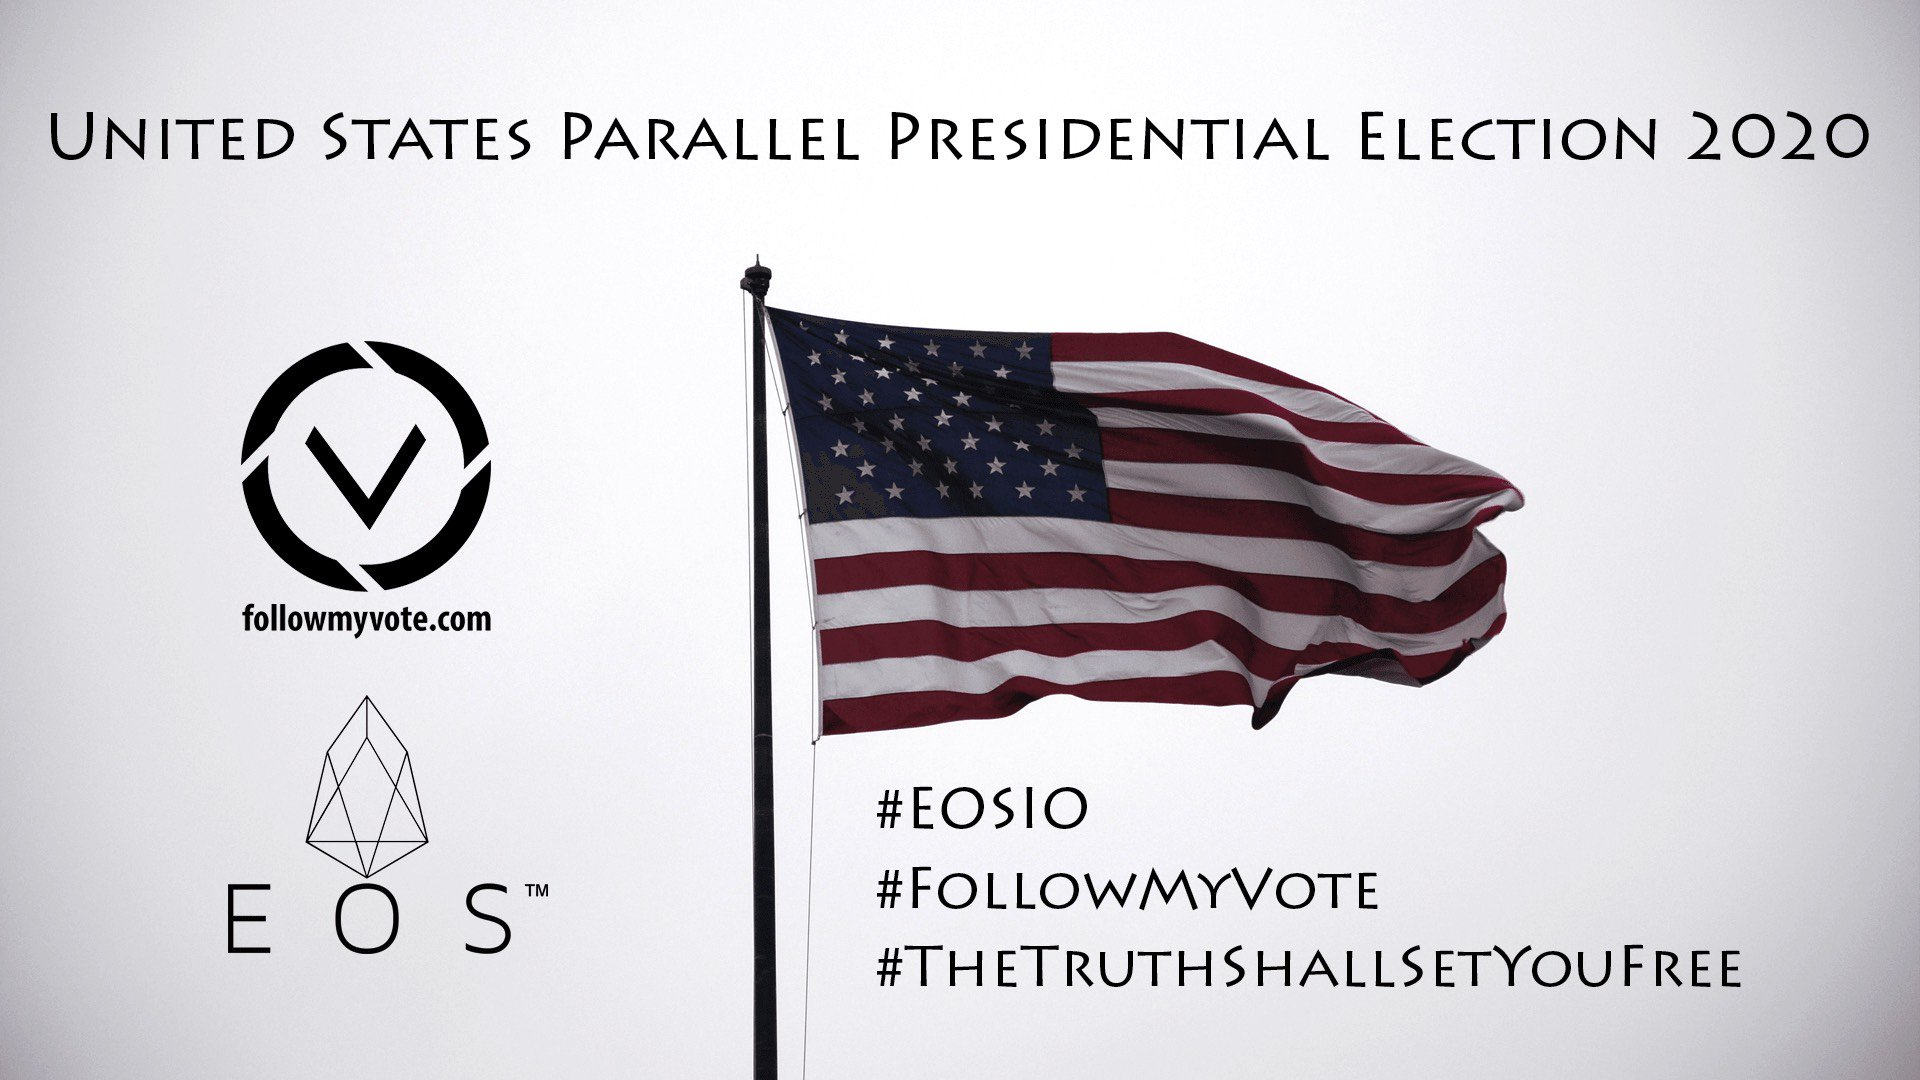 2020 United States Parallel Presidential Election on EOSIO